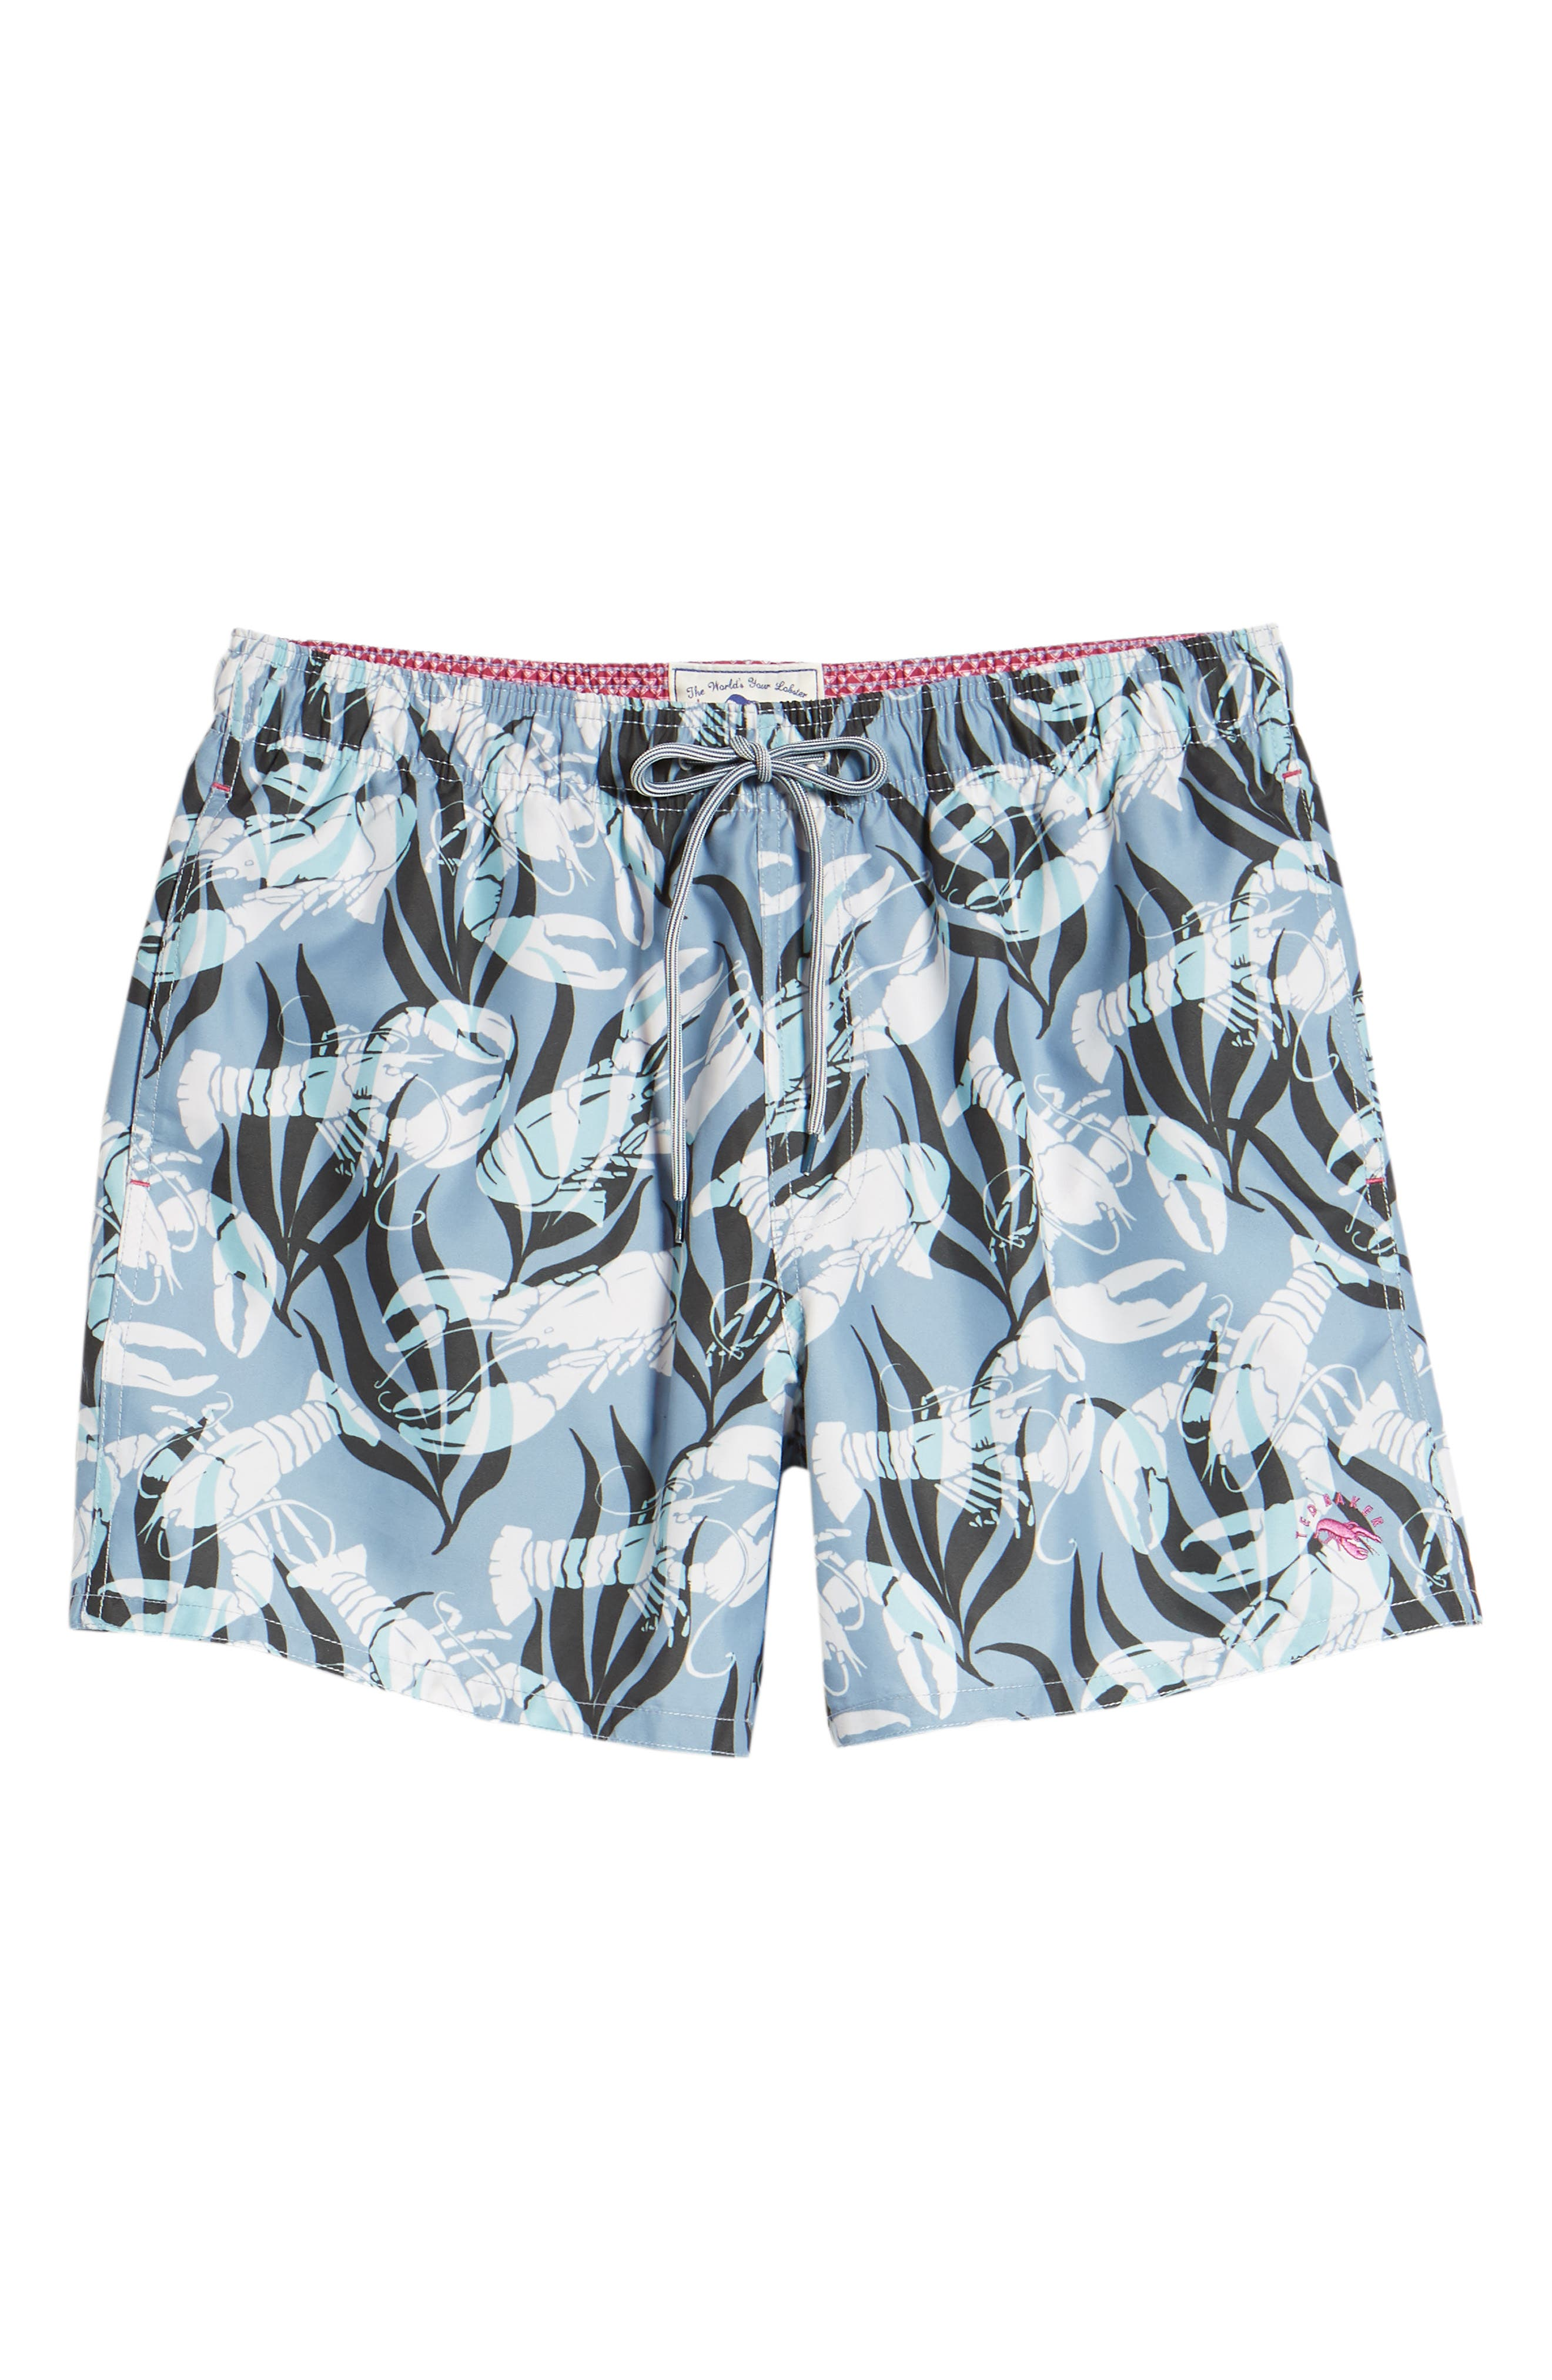 Yalow Slim Fit Lobster Swim Trunks,                             Alternate thumbnail 5, color,                             Blue